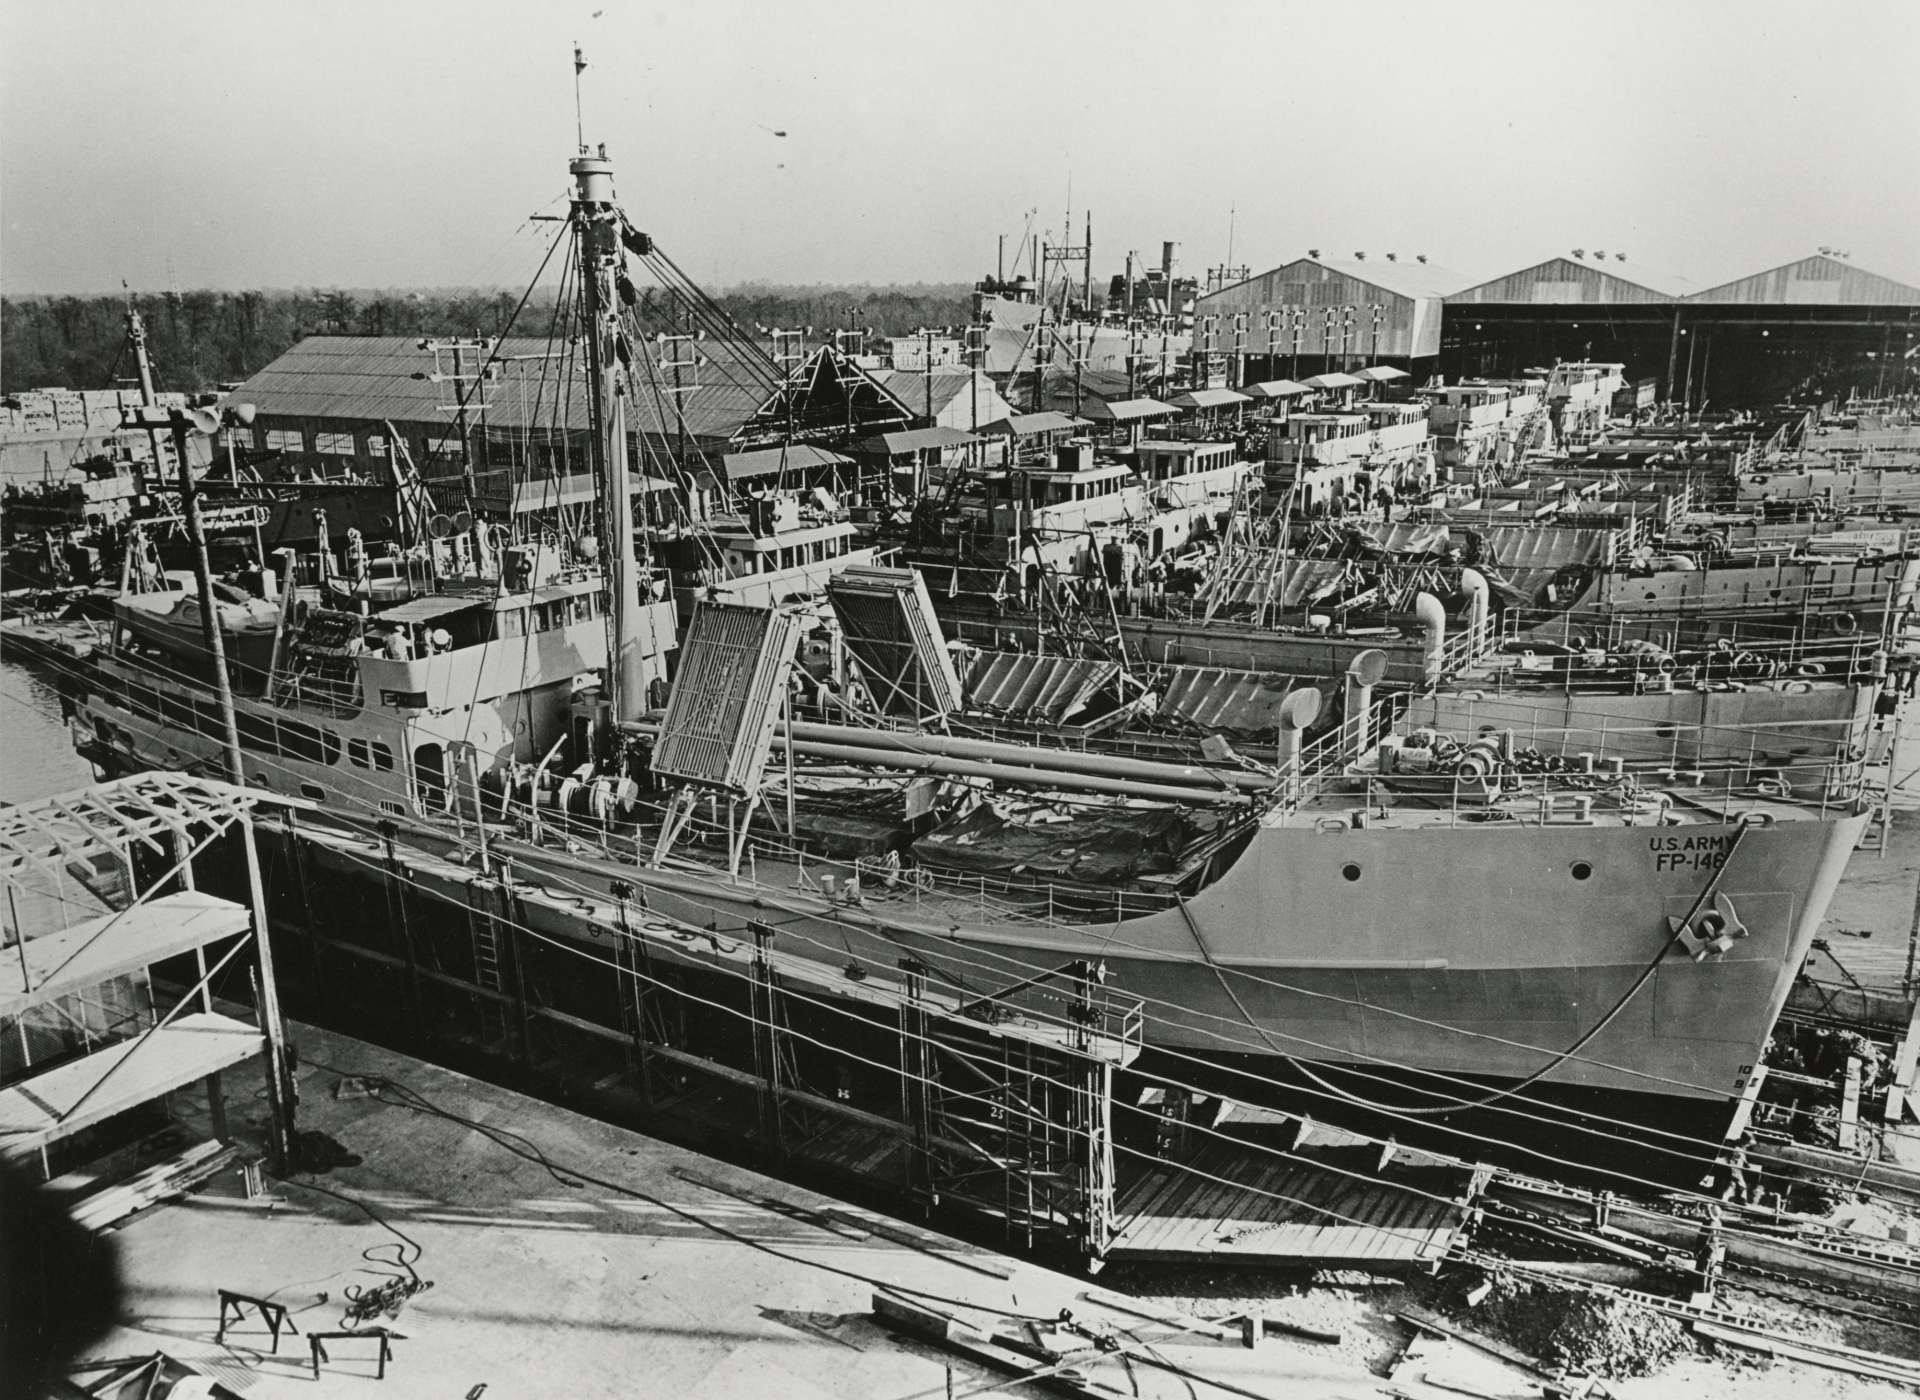 One hundred FP, later designated FS (Freight, Supply) ships, were built at Industrial Canal on a moving assembly line. As each ship reached the end of the line it was launched, stern first, into the Industrial Canal for final testing. In this image, FP-146 is nearing completion and launch.